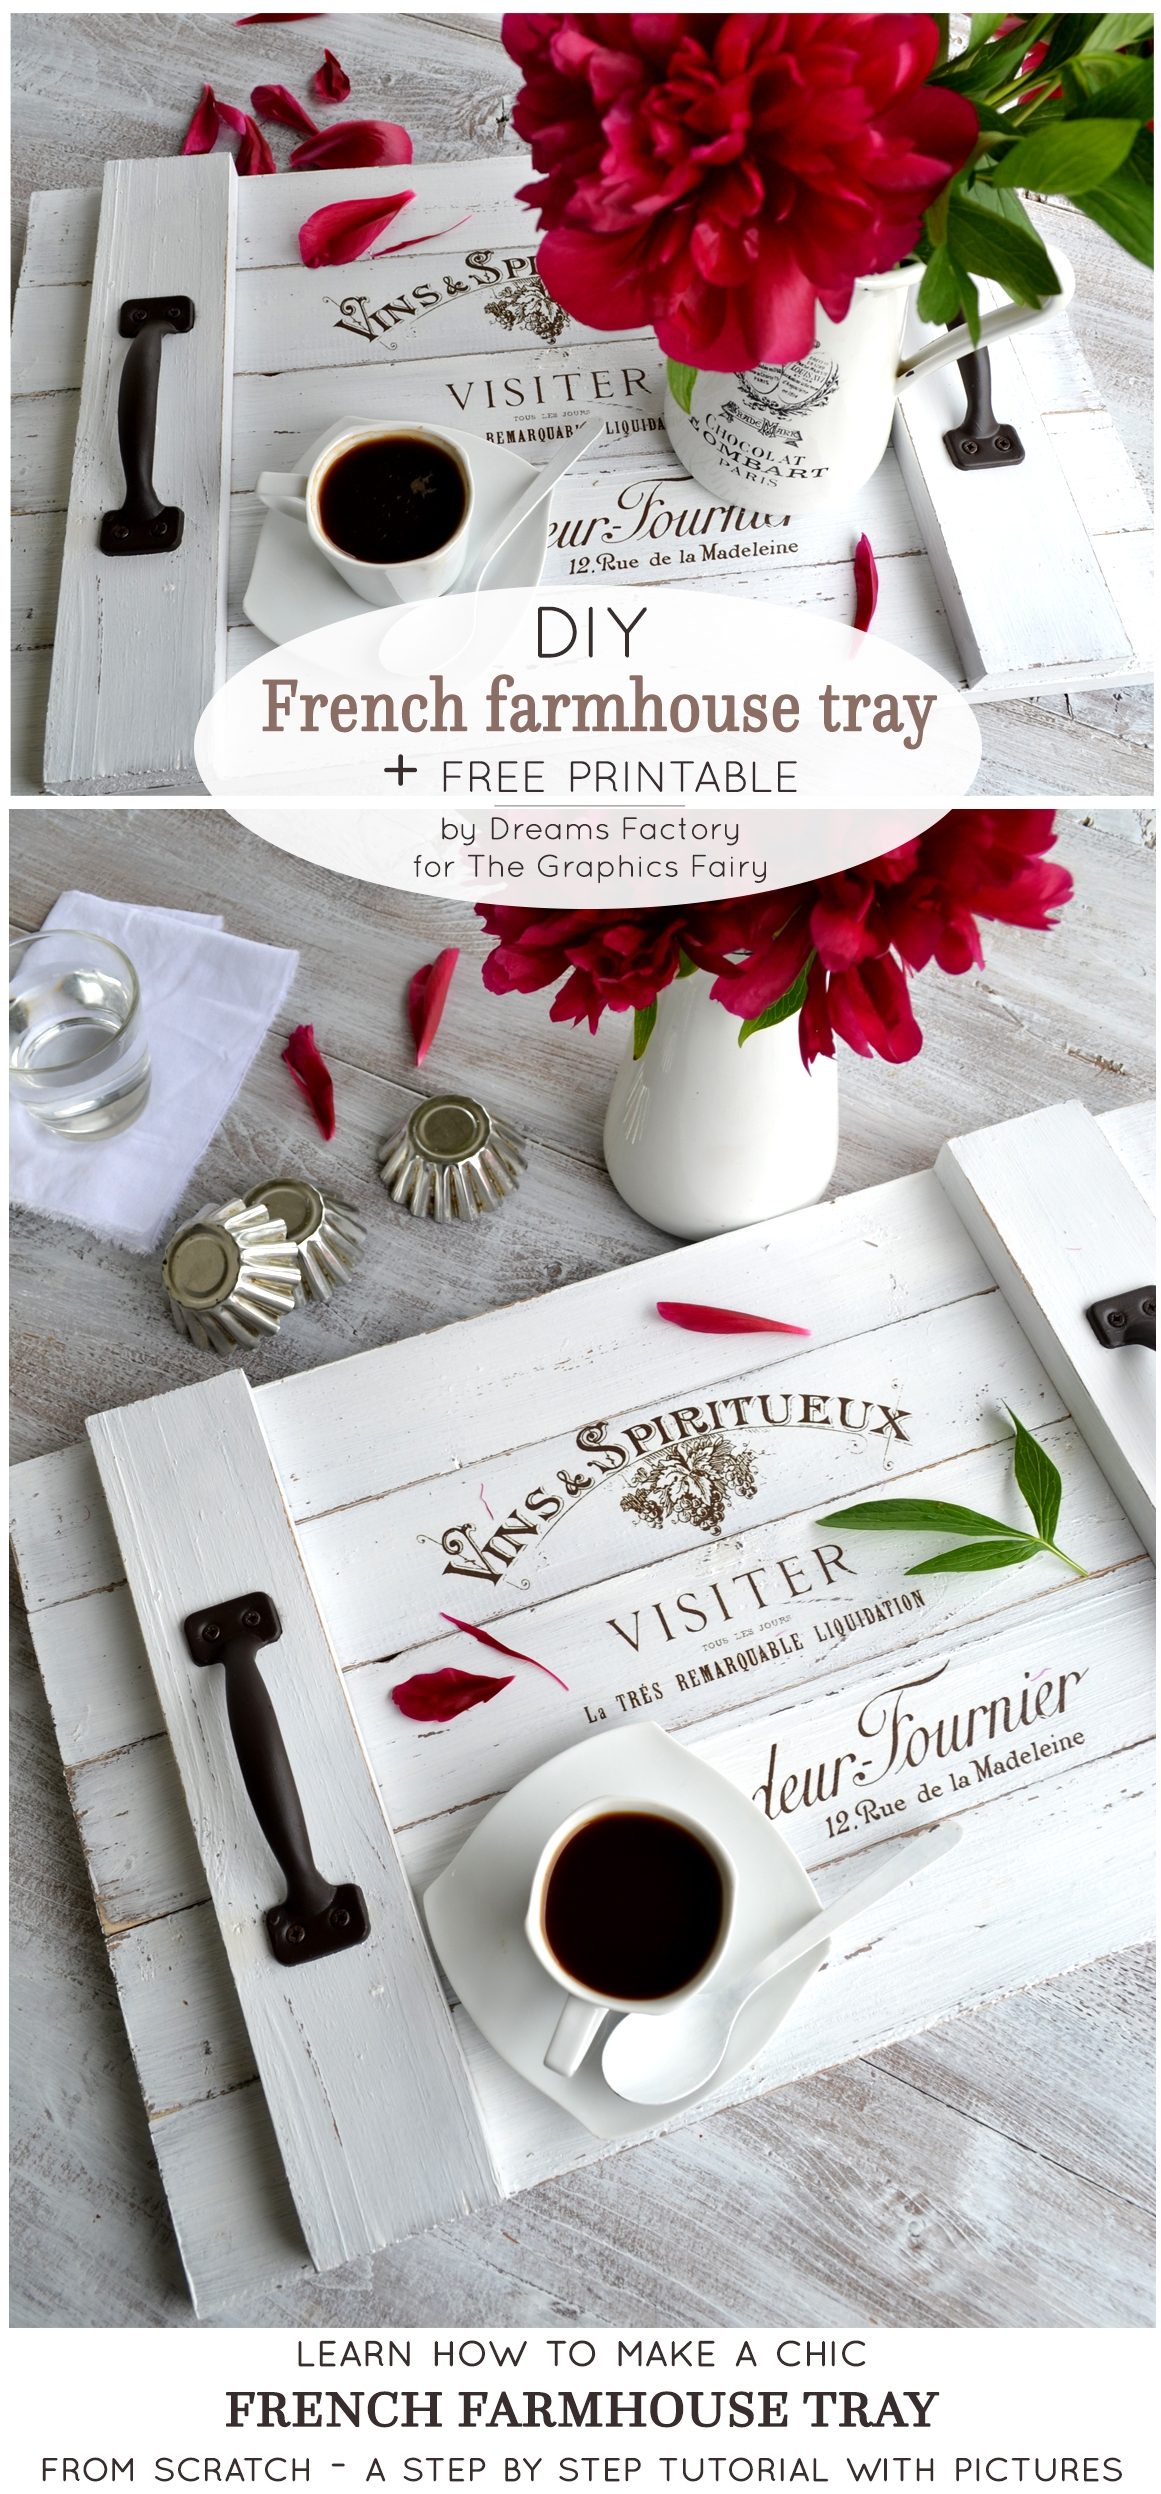 Learn how to make a shiplap inspired DIY French farmhouse tray from scratch, that you can use all over your home both for its aesthetics but also for its great functionality - by Dreams Factory